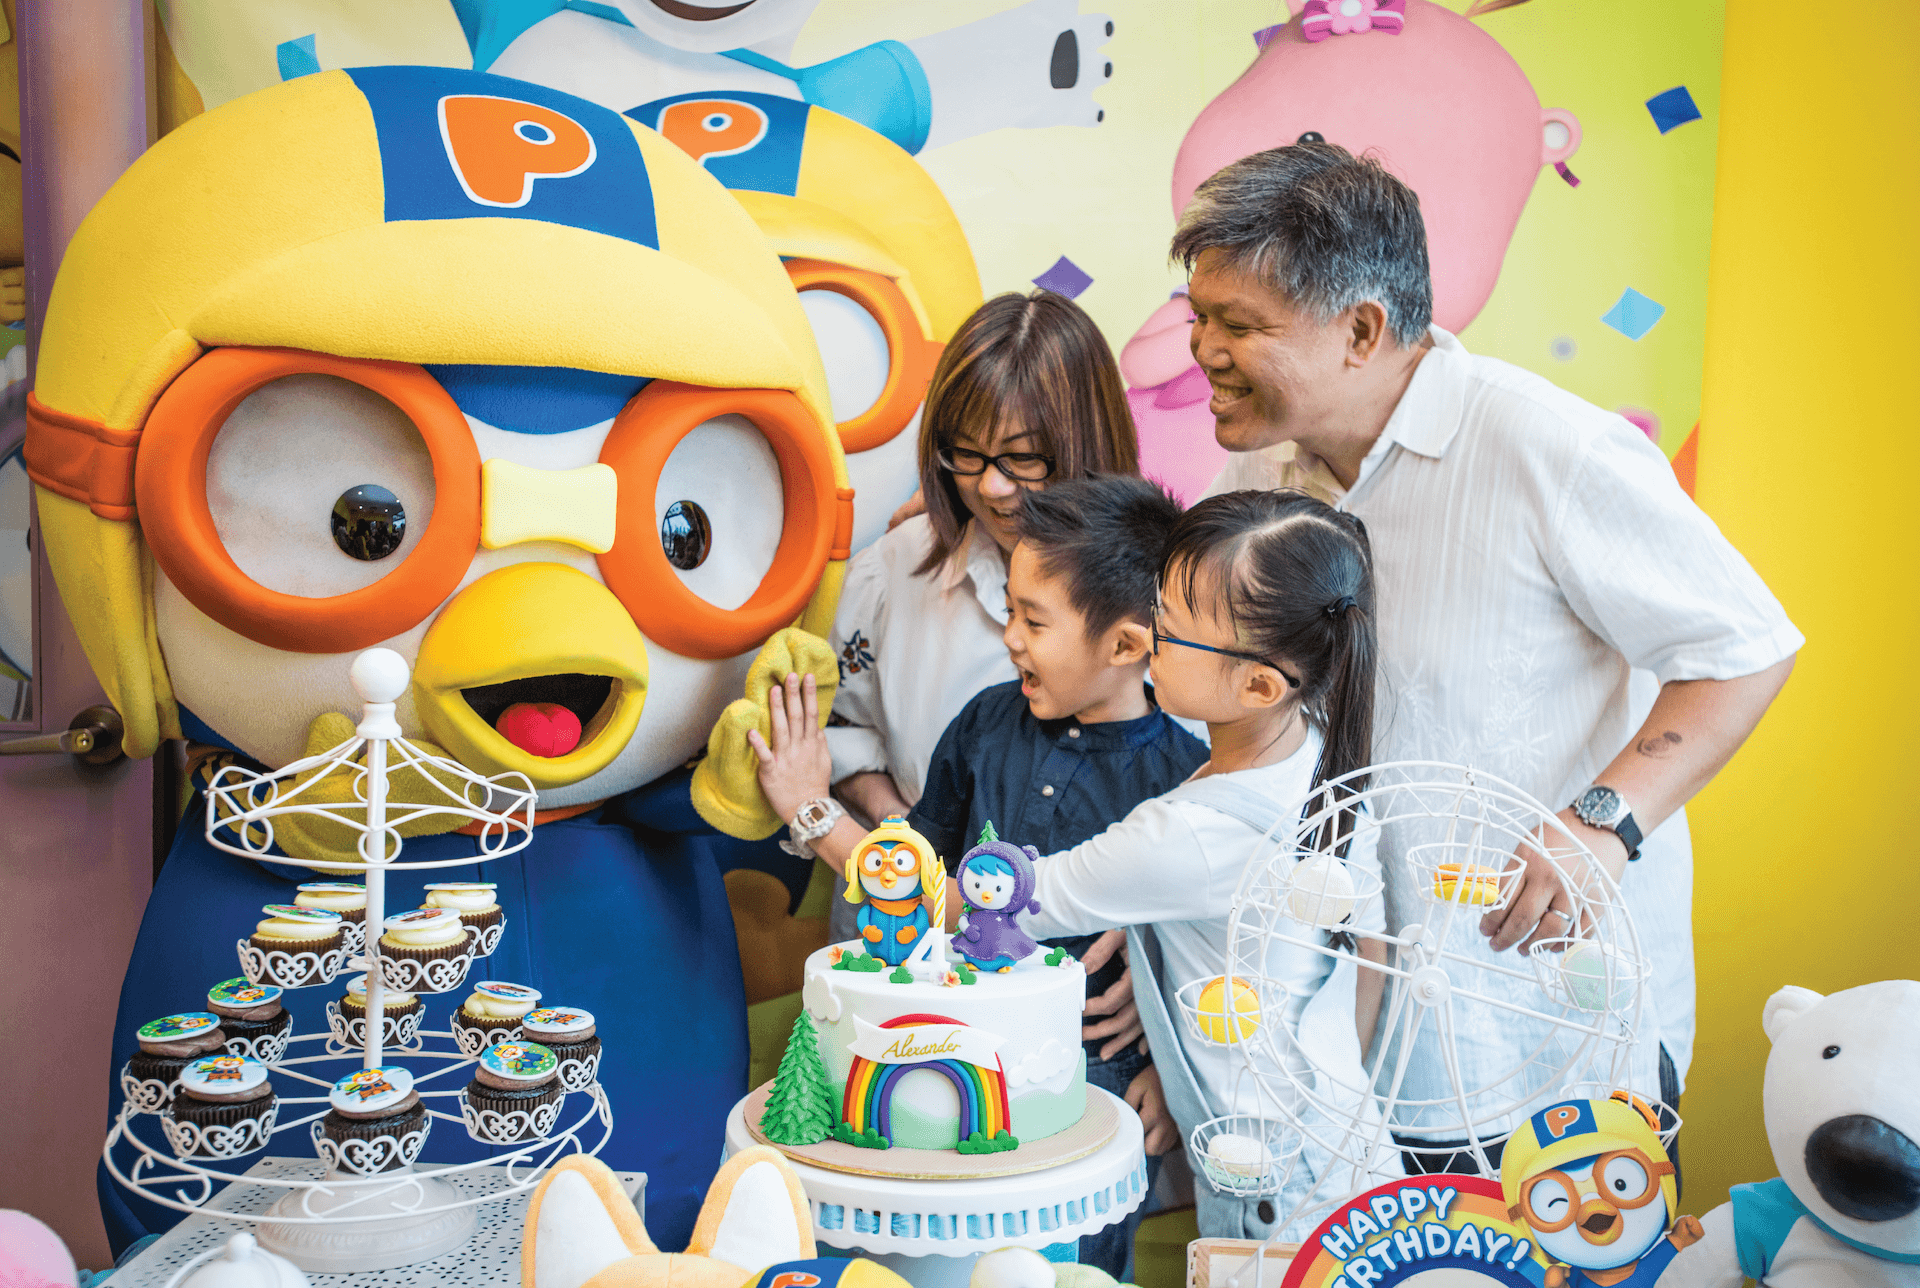 Birthday Party Add-Ons - Additional Mascot Appearance | Pororo Park Singapore